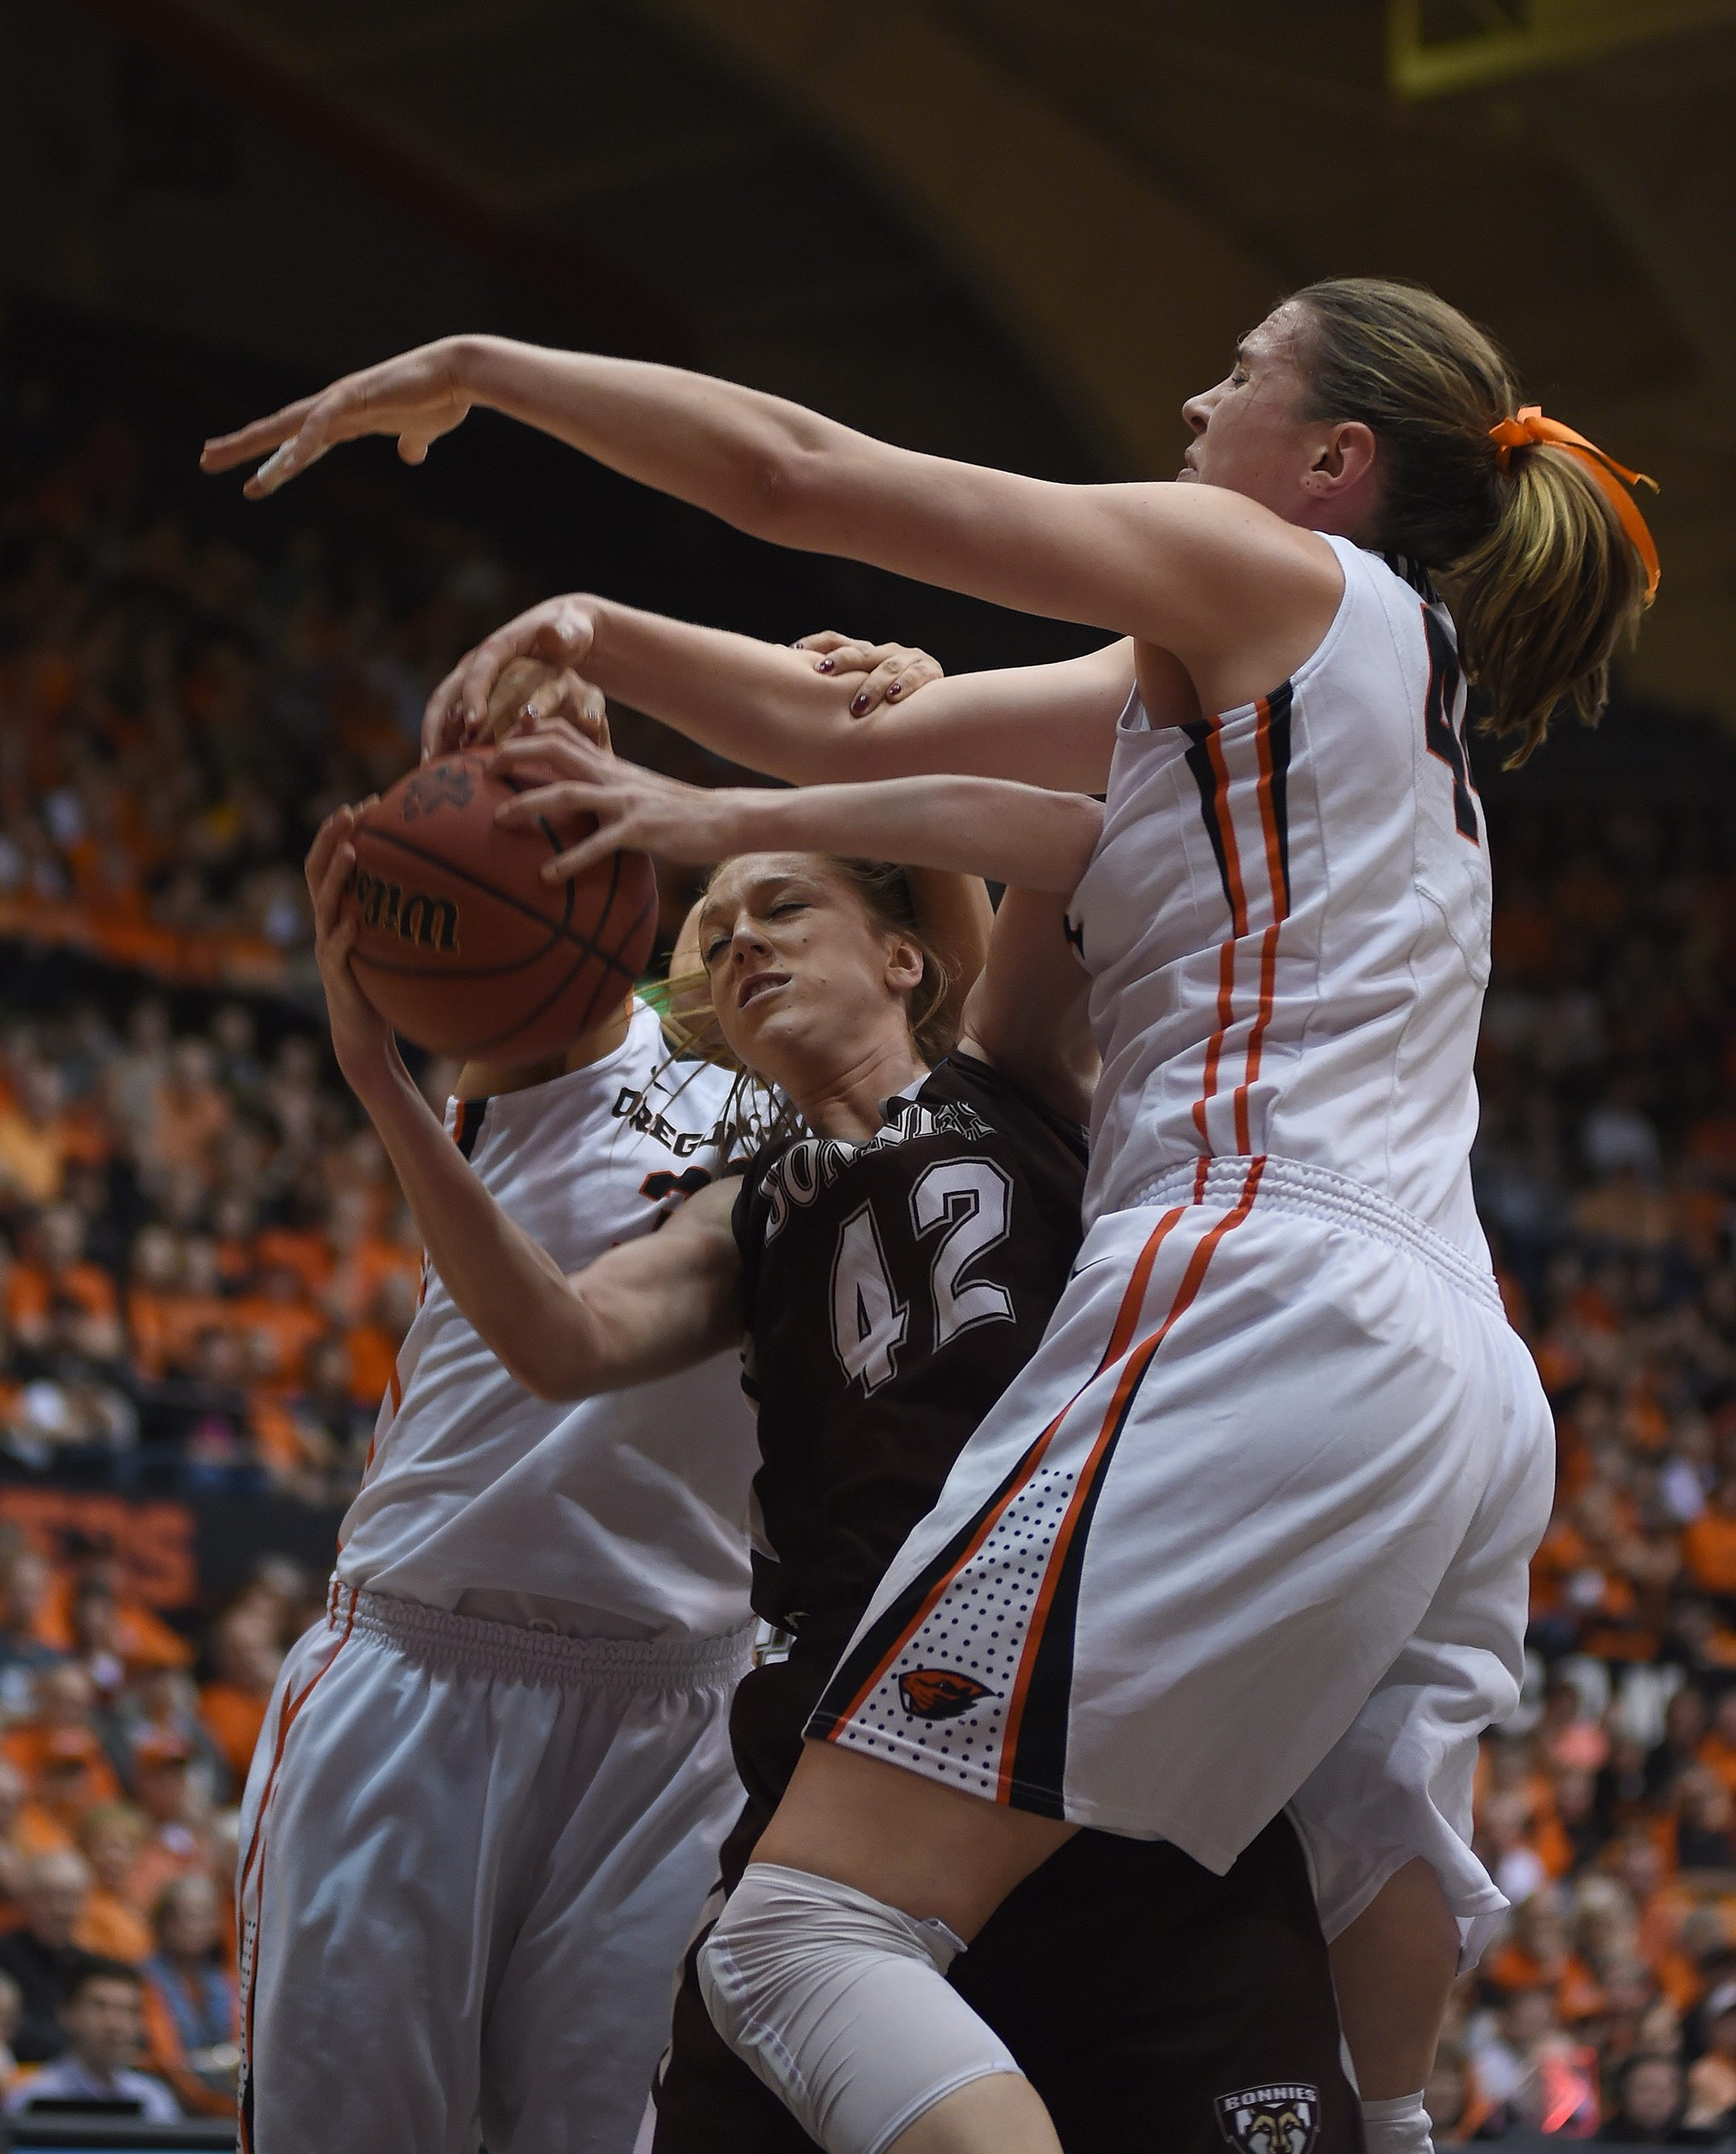 St. Bonaventure forward Katie Healy runs into a couple of Oregon State defenders when she tried to put up a shot in Sunday's NCAA tournament game.